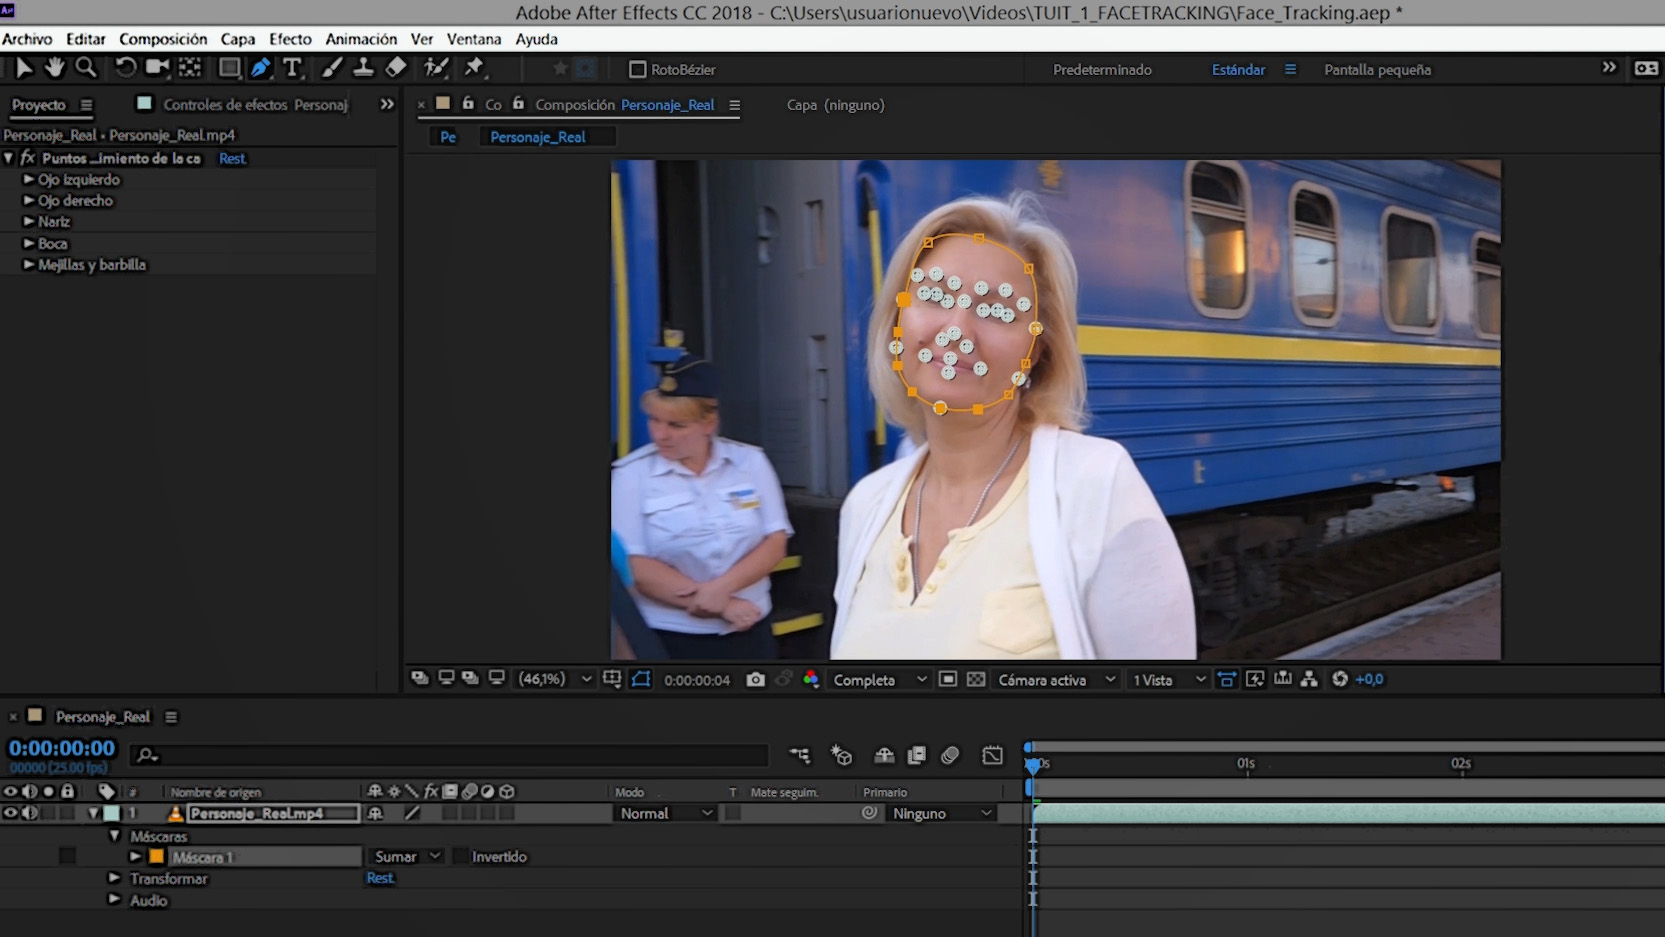 #TUITORIAL | Tracking de caras con Adobe After Effects